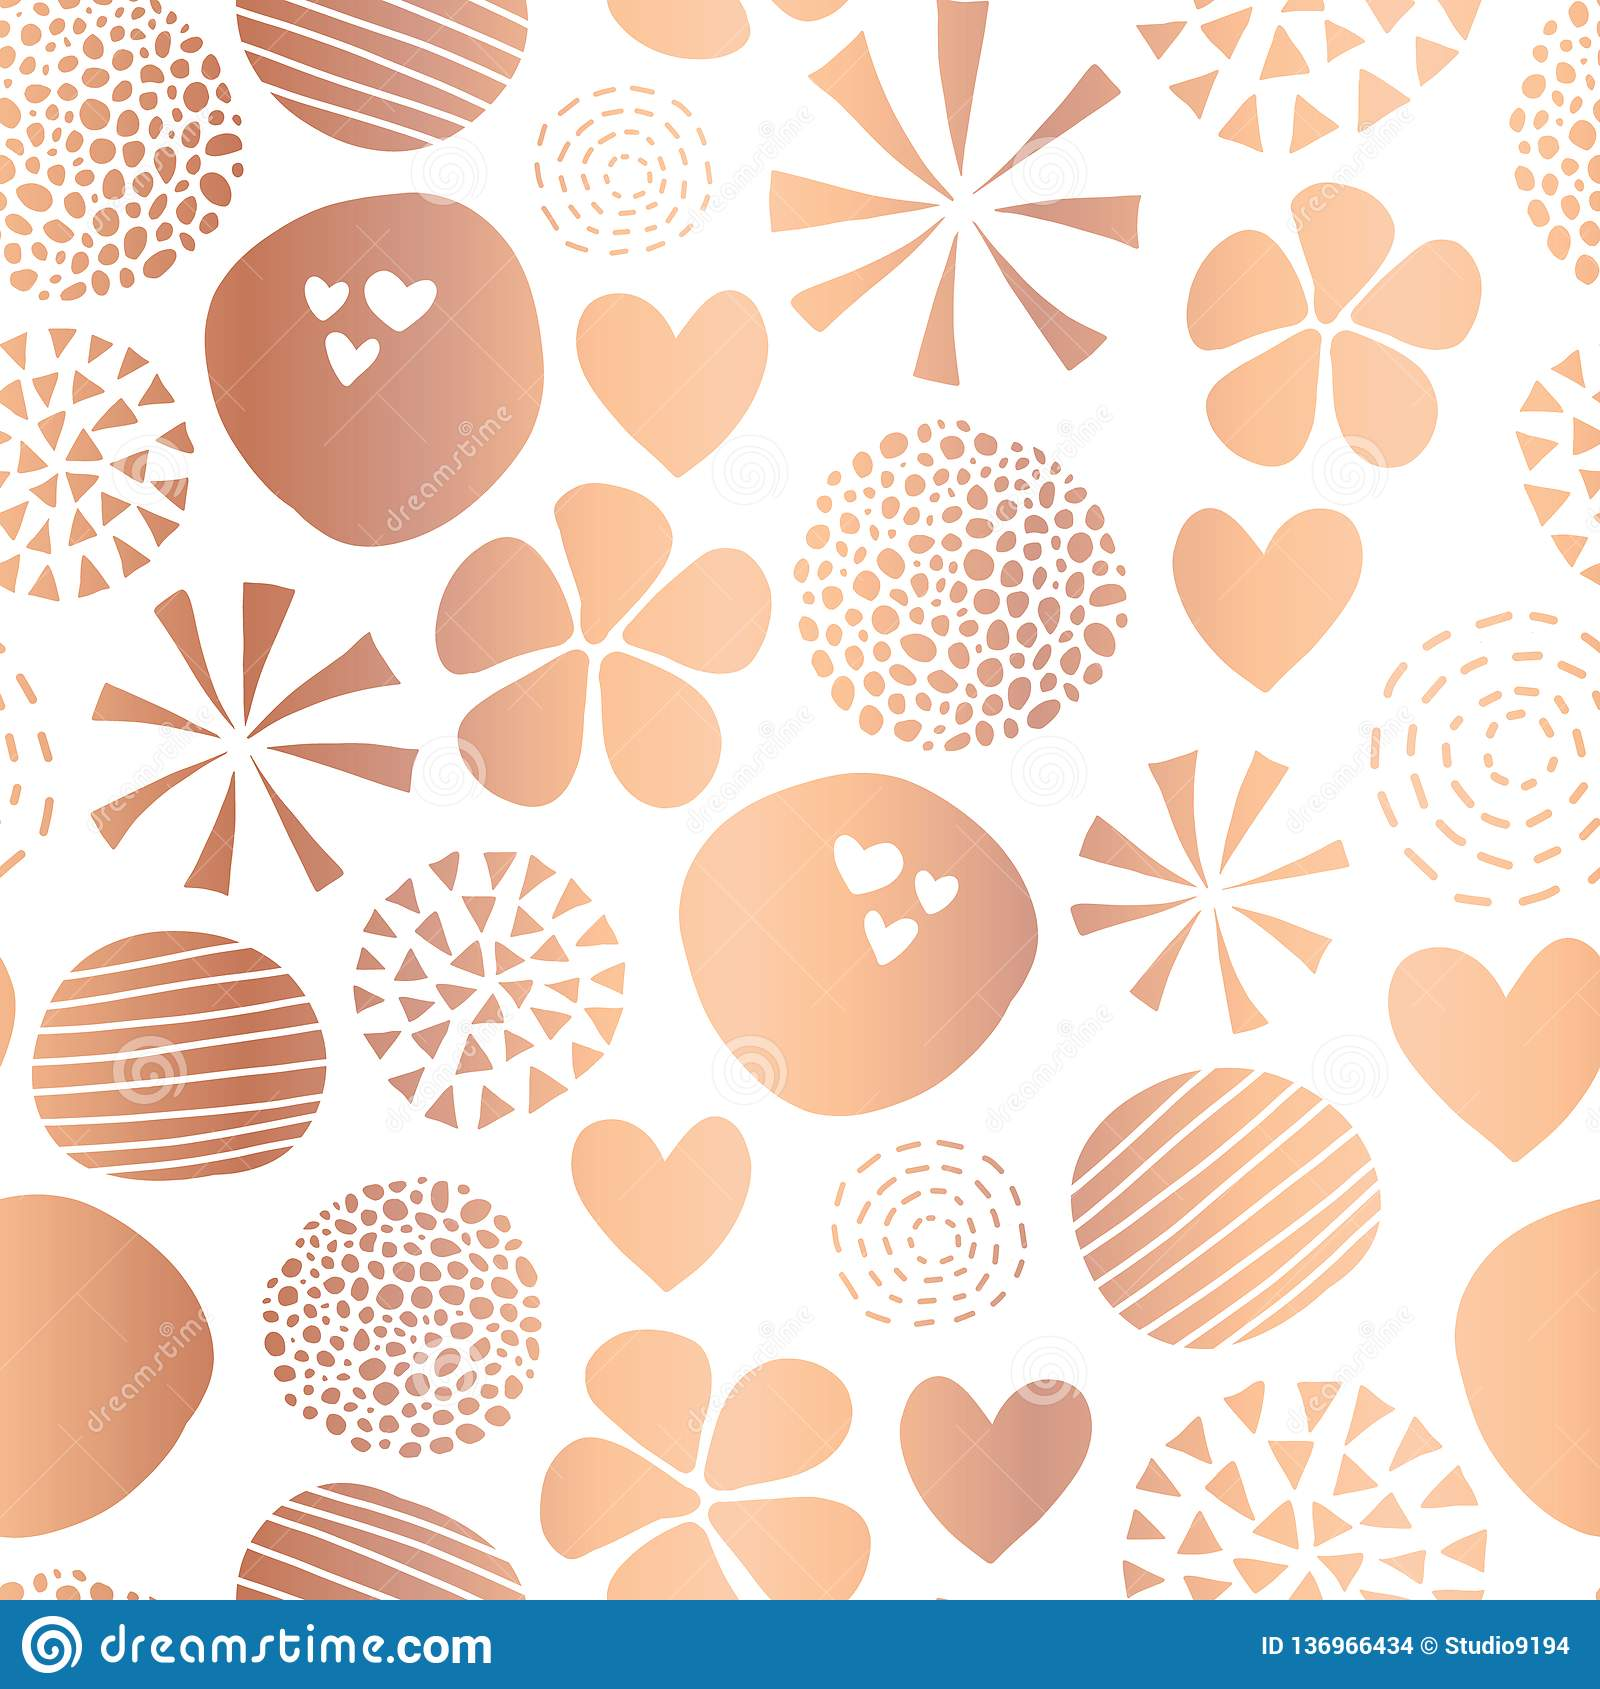 Copper Foil Abstract Seamless Vector Pattern With Flowers Dots Hearts On White Background Cute Rose Gold Metallic Foil Feminine Stock Vector Illustration Of Decor Backdrop 136966434